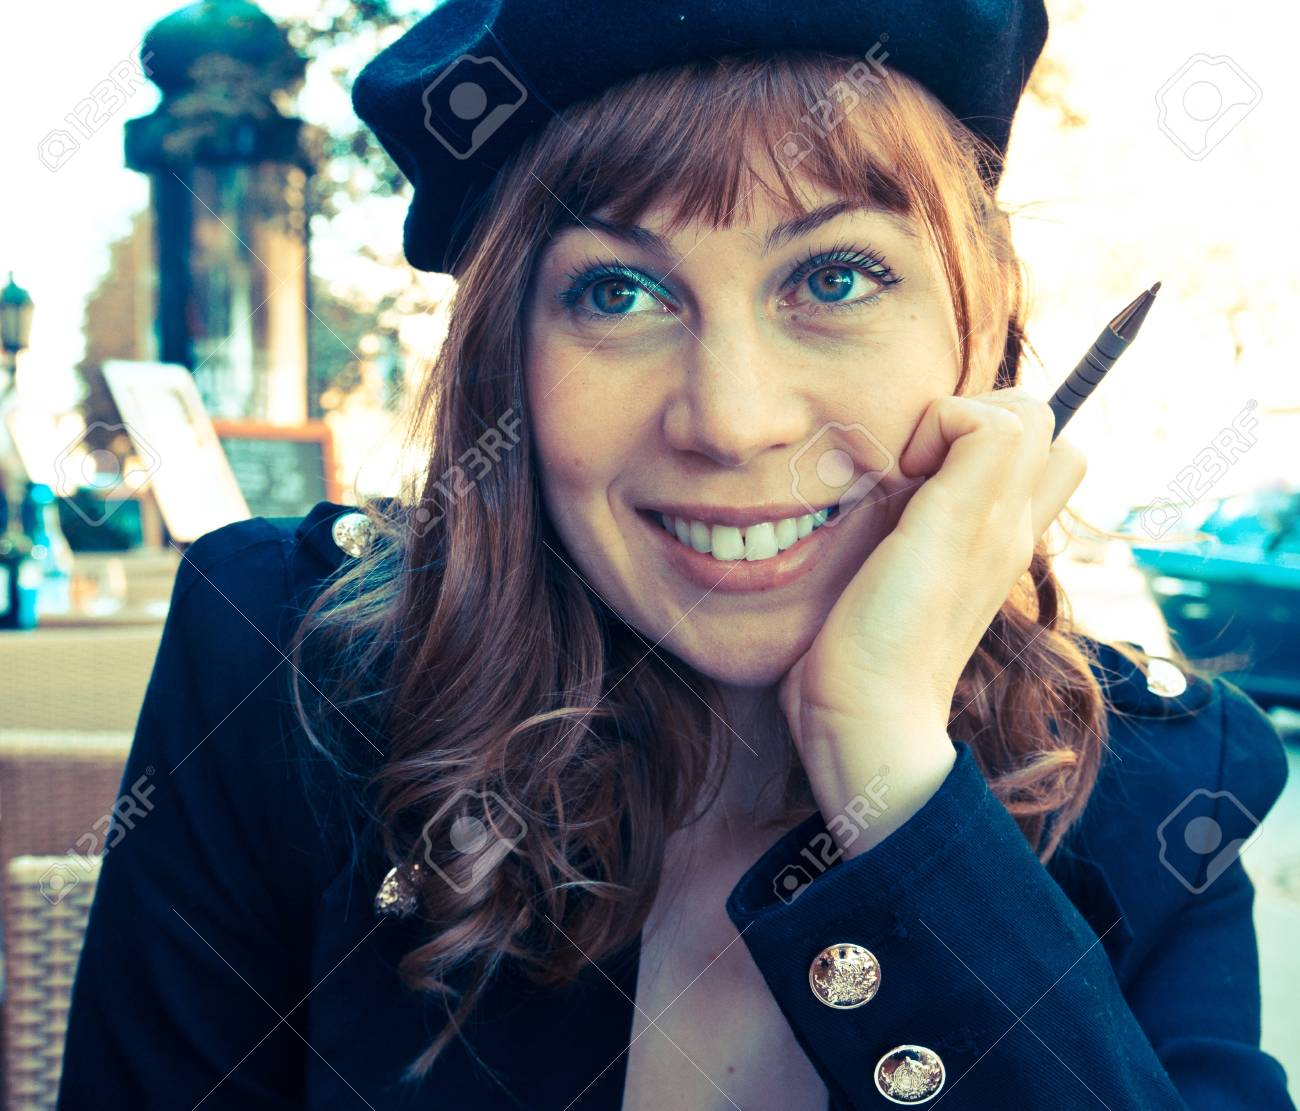 Female Outdoor Cafe Portrait in paris france Stock Photo - 9175217